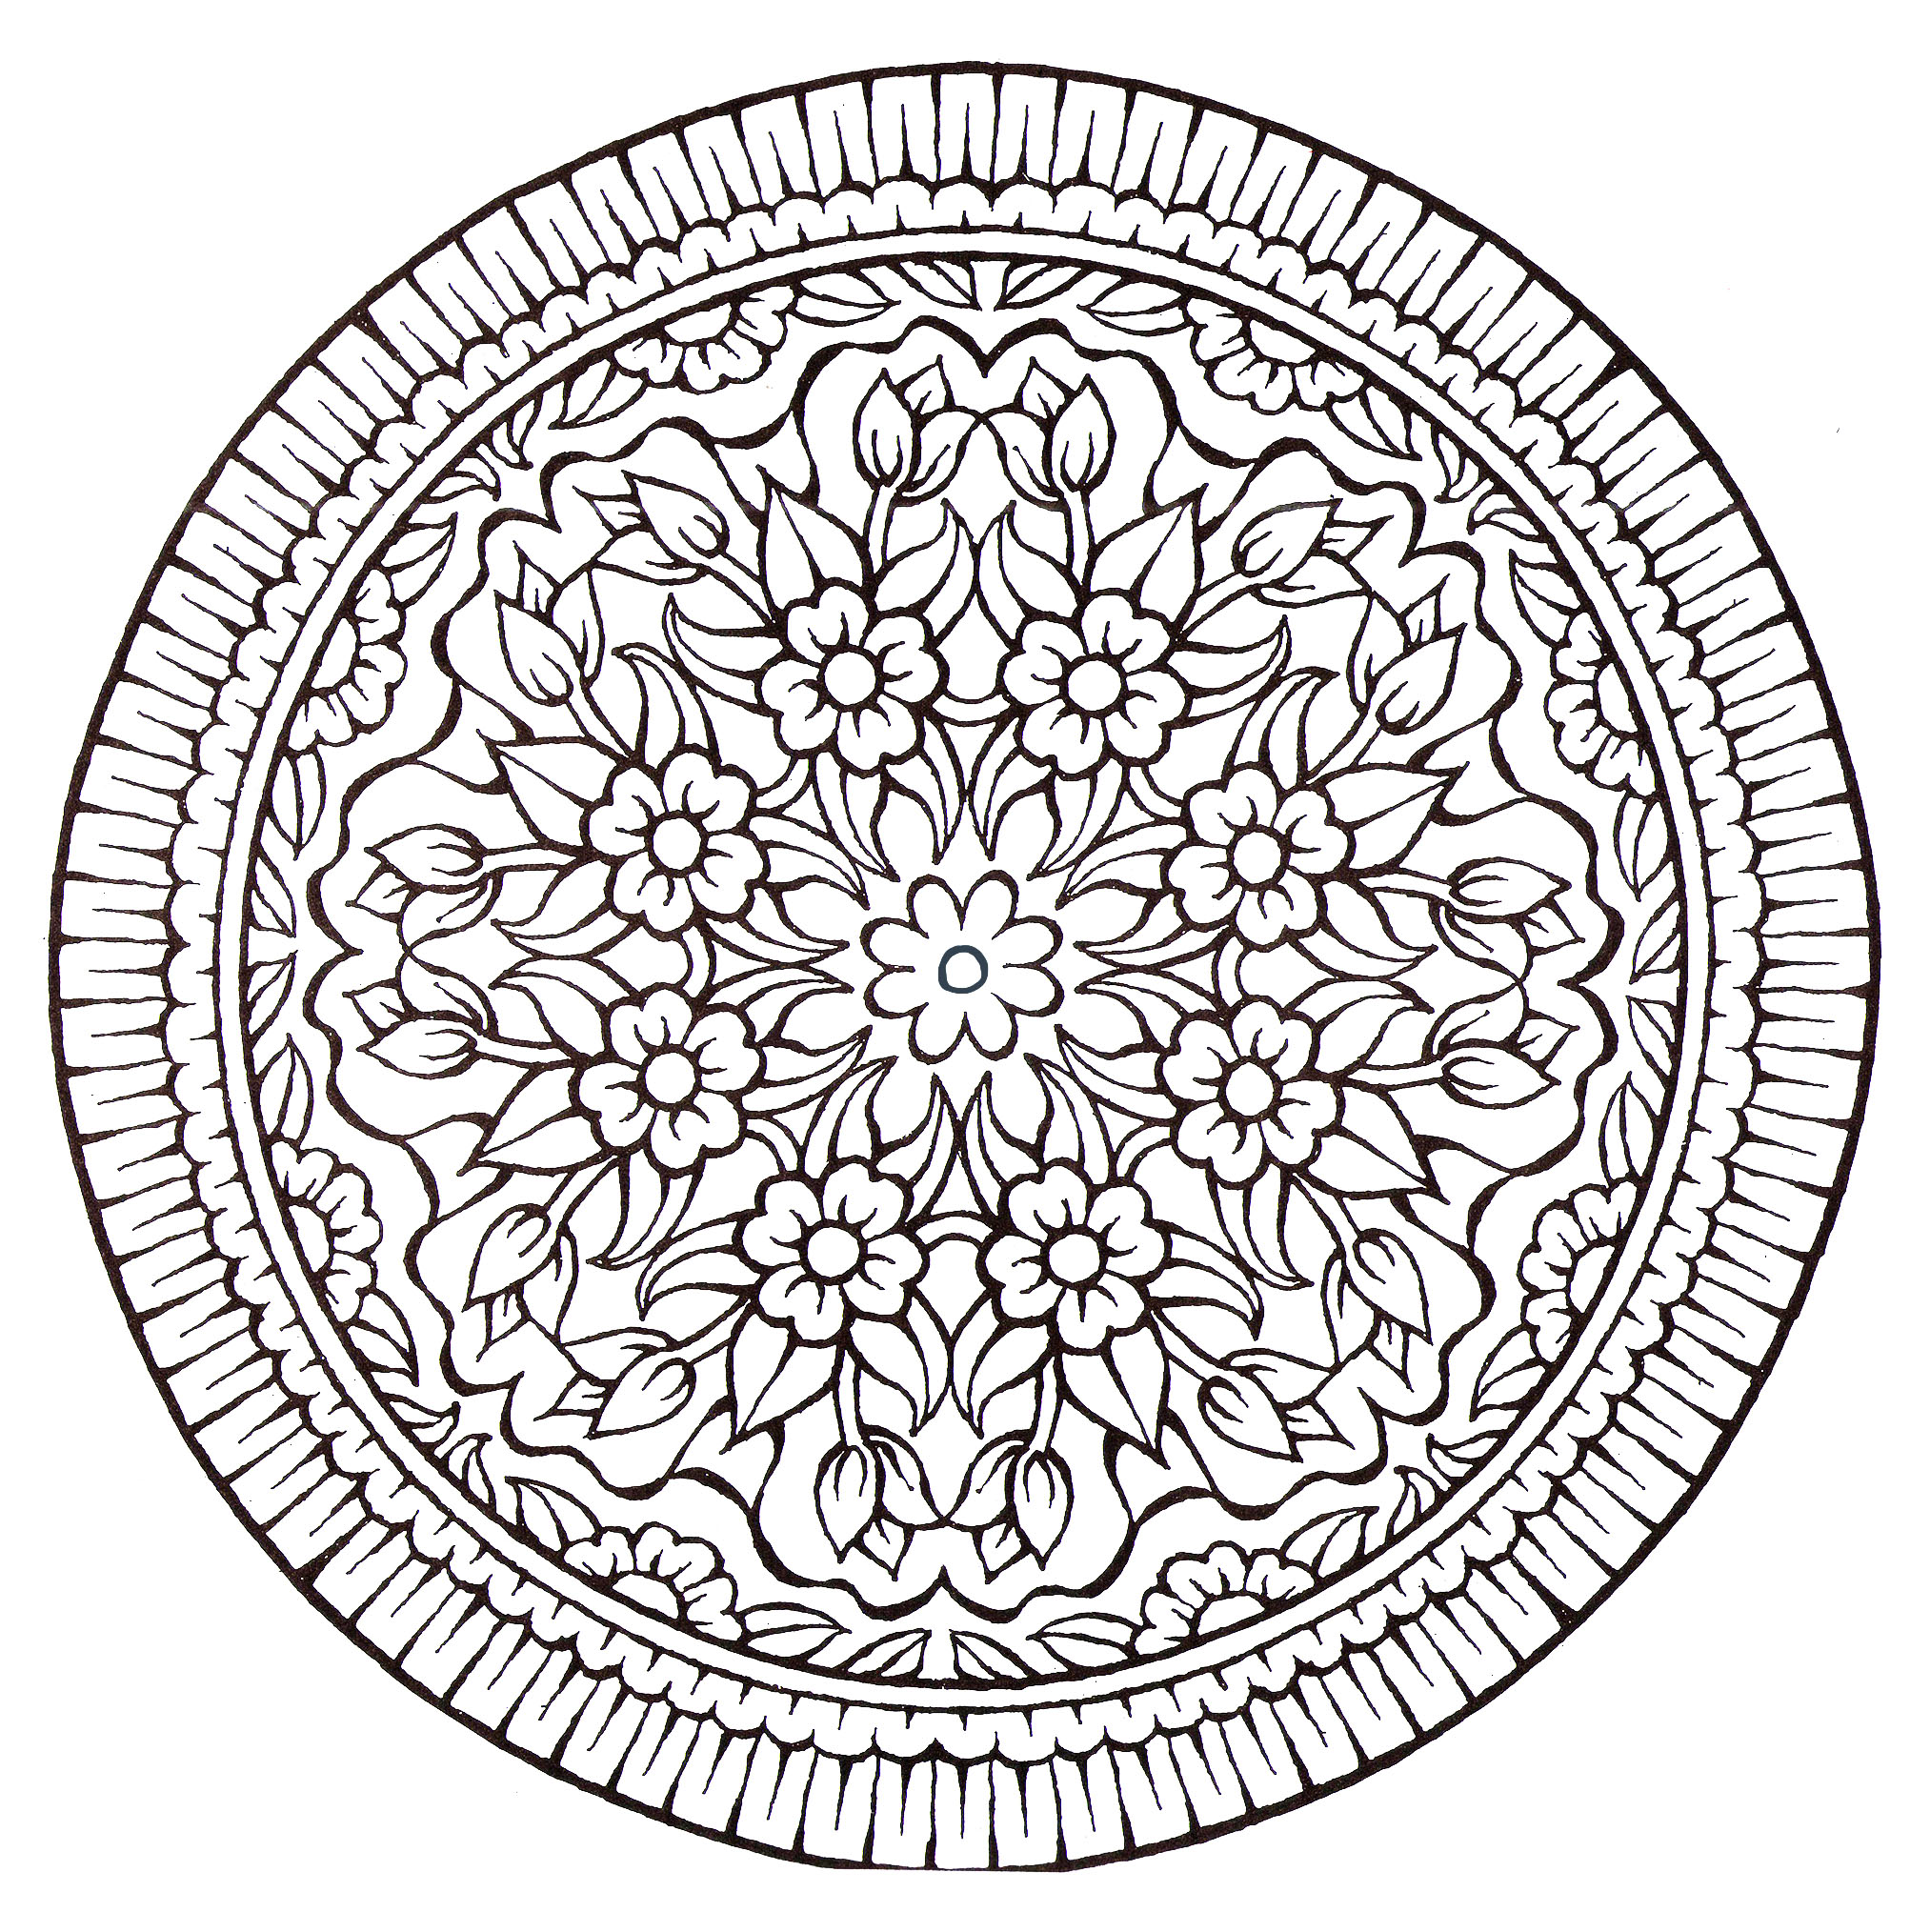 mandala vintage style flowers mandalas coloring pages for